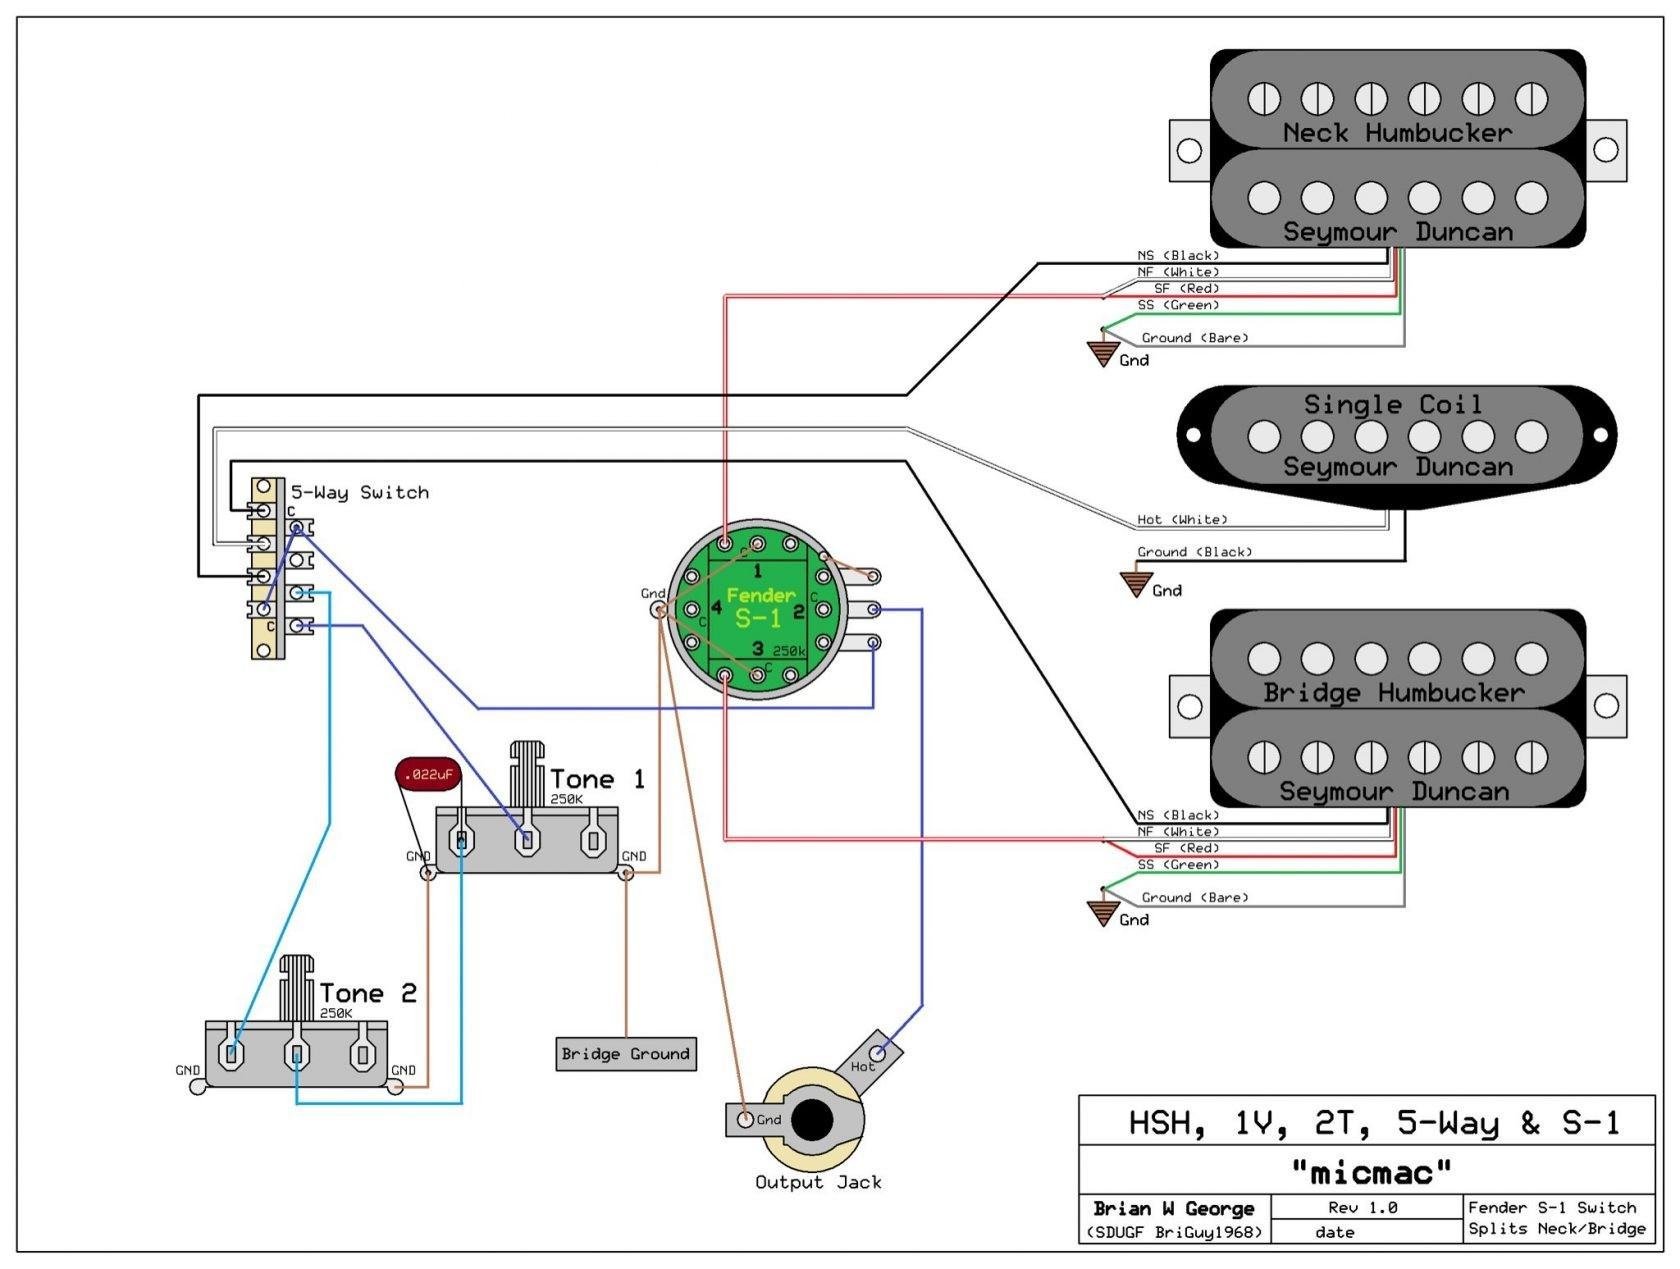 Fender Strat Wiring Diagram 5 Way Switch Download